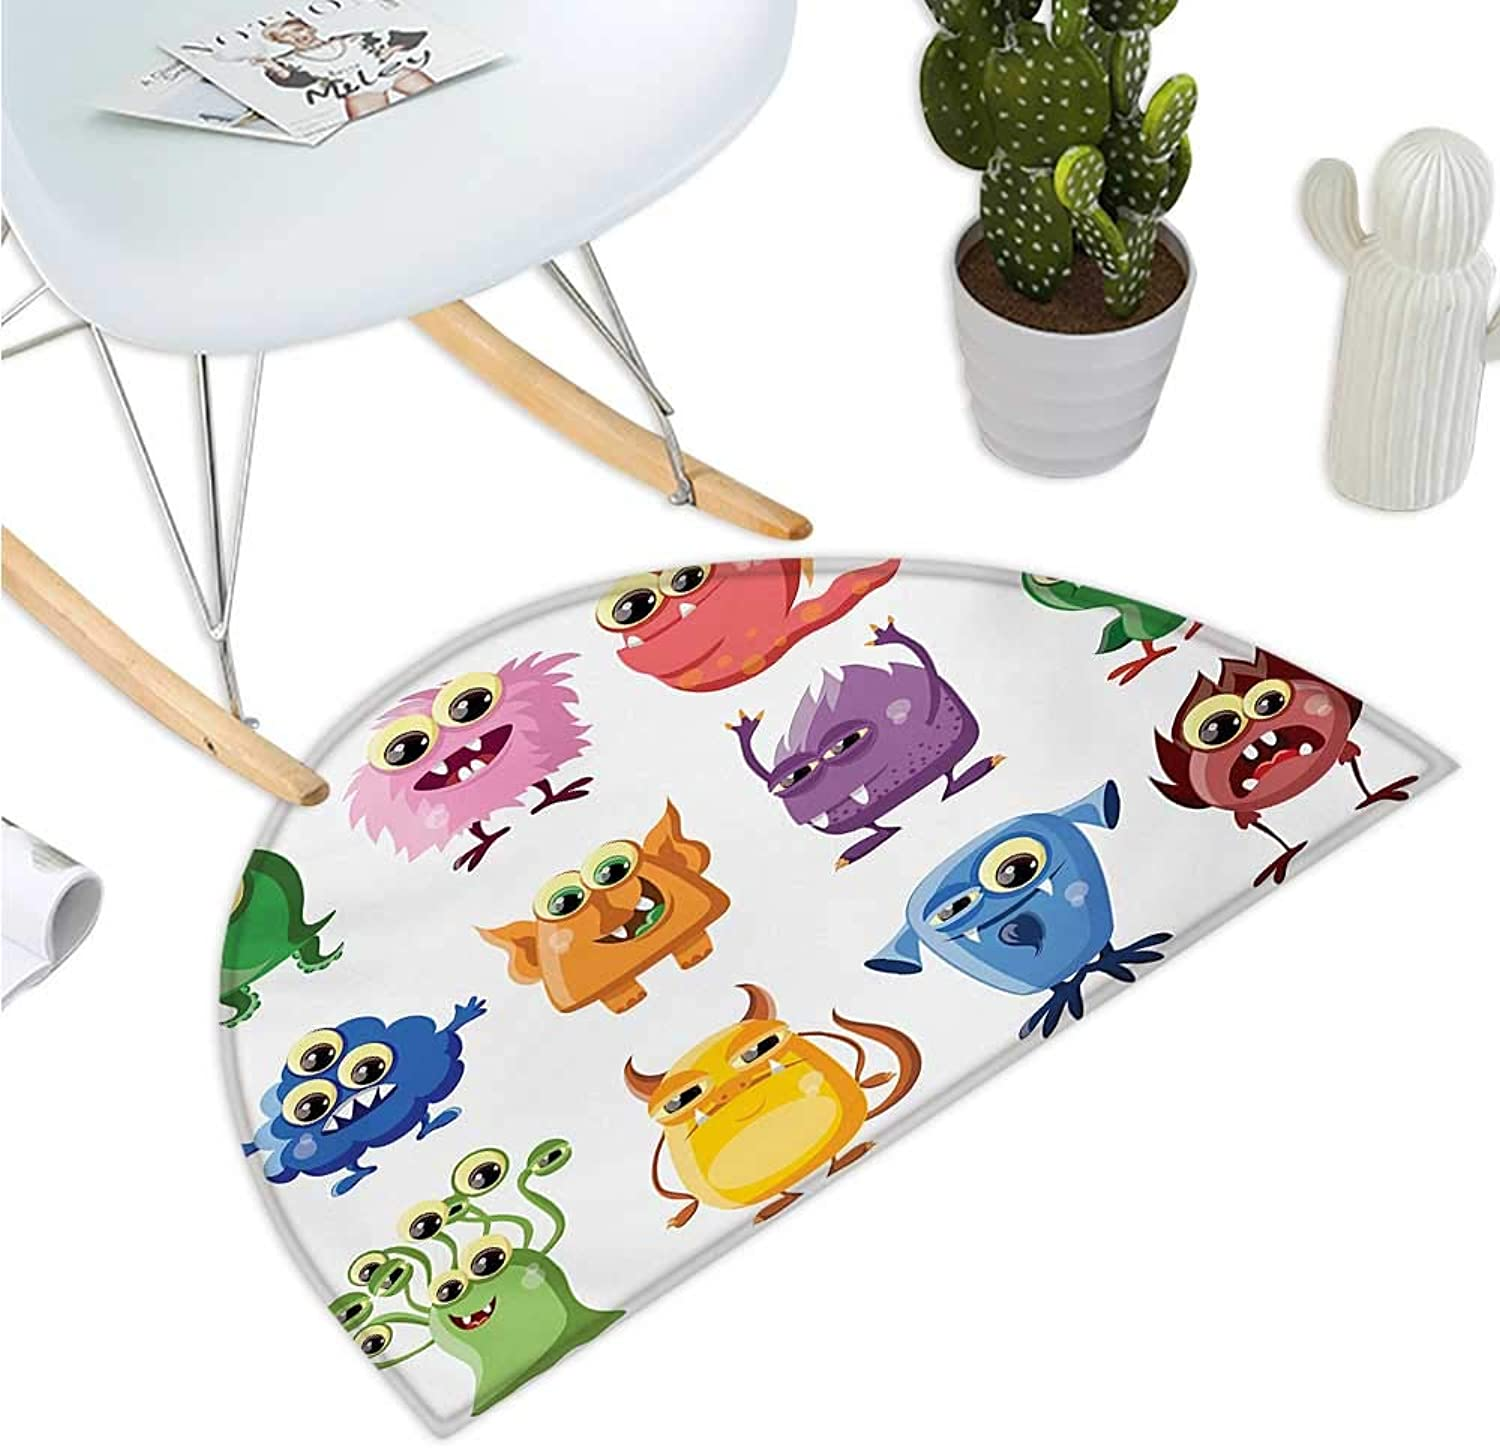 Funny Semicircular Cushion Animated Bacteria Aliens Theme Germ Whimsical Cartoon Monsters Humor Faces Graphic Entry Door Mat H 35.4  xD 53.1  Multicolor